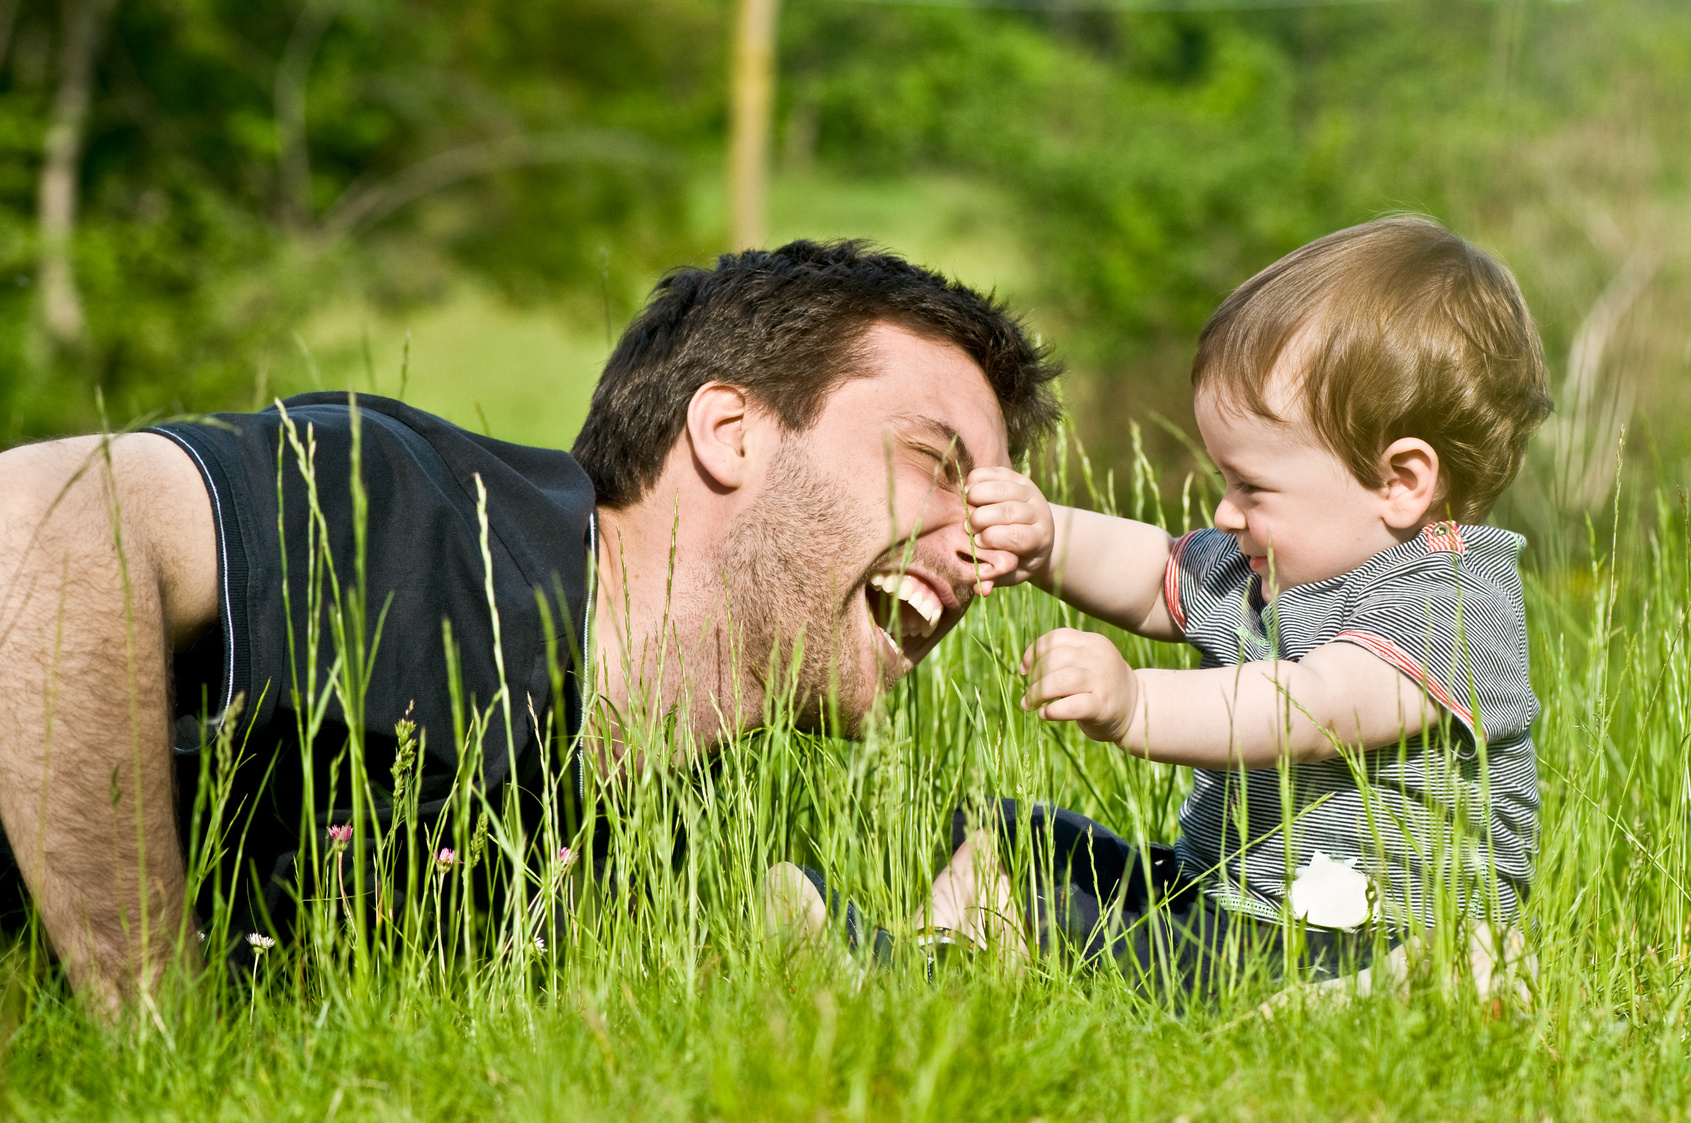 cute little child playing and joking in countryside with dad during summer